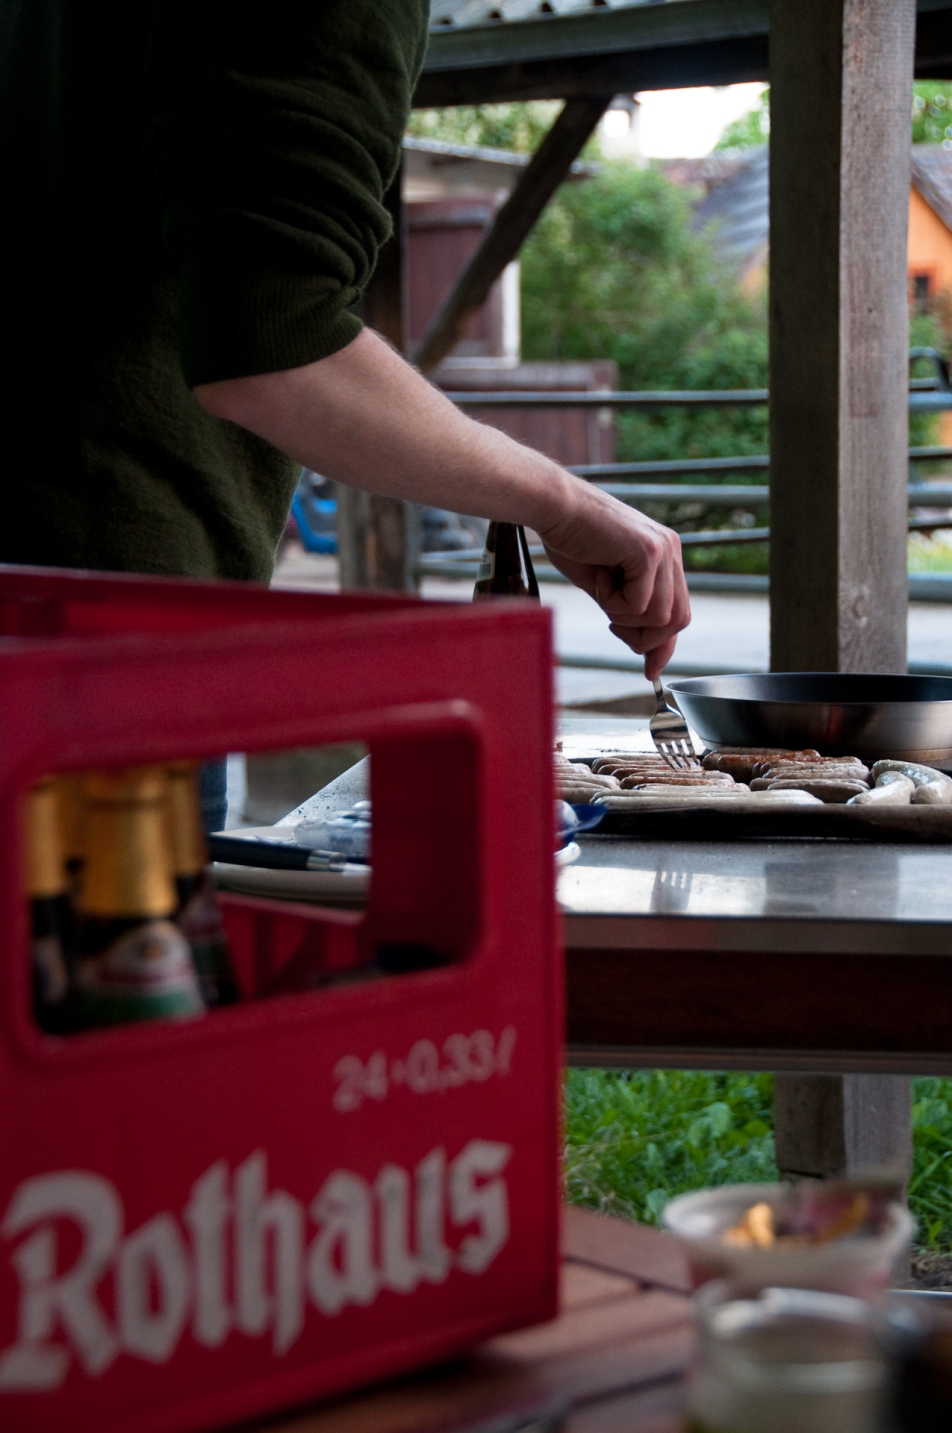 grill rothaus öl beer barbecue